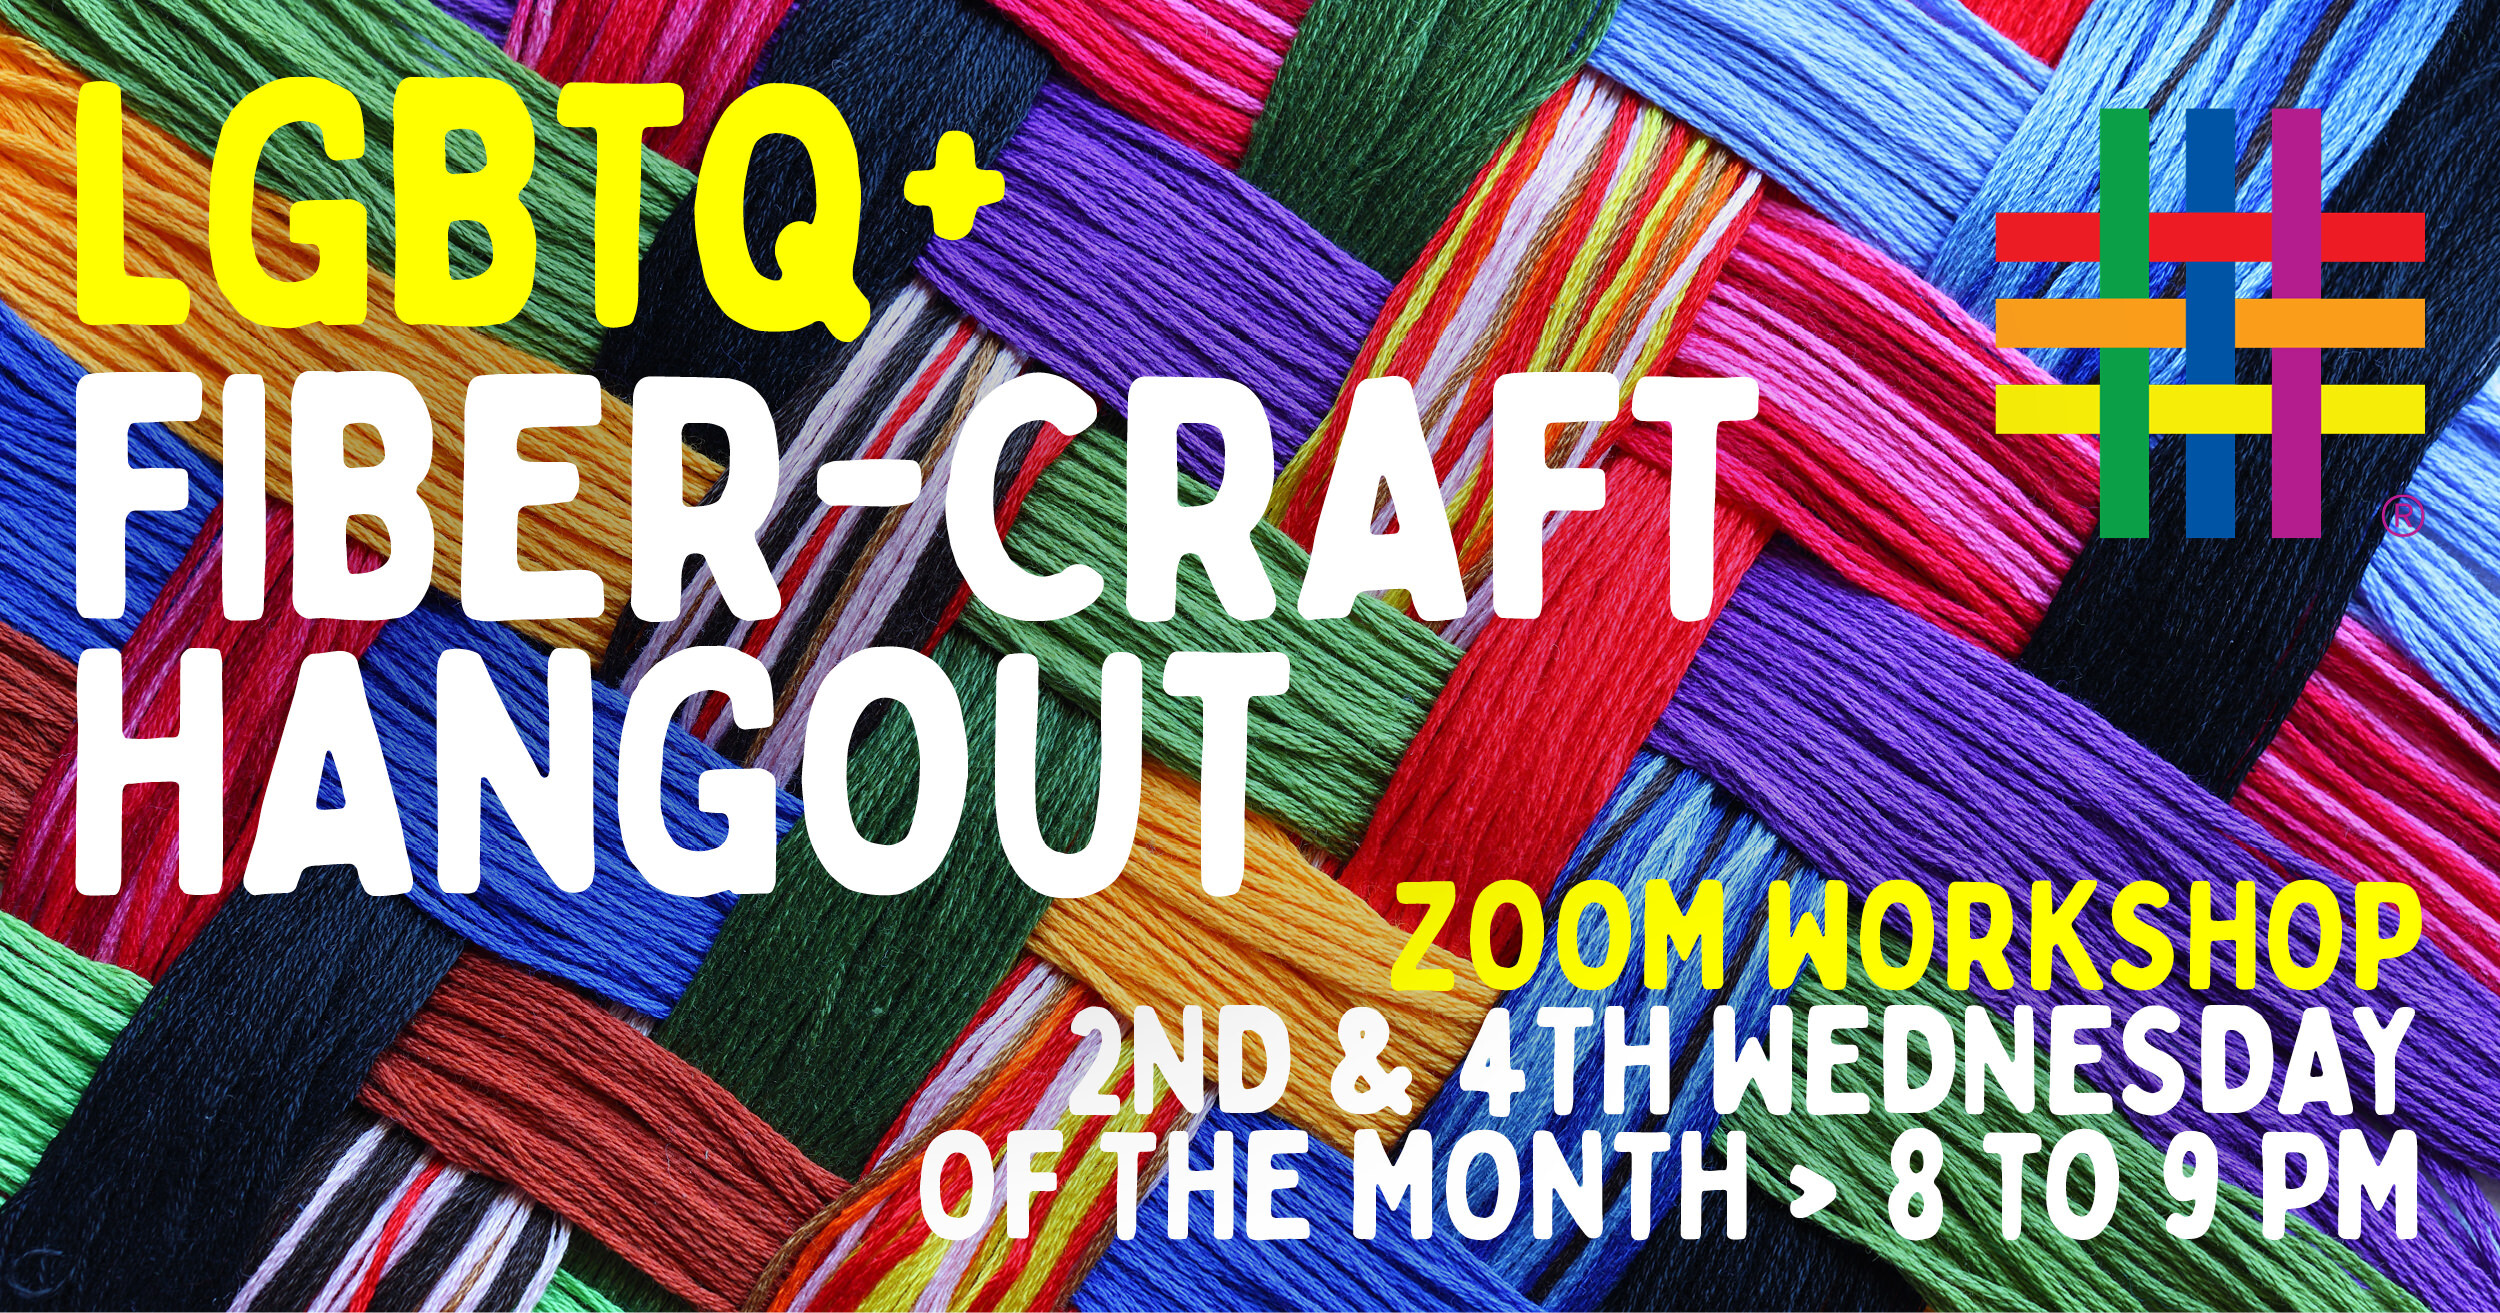 ZOOM WORKSHOP: LGBTQ+ Fiber-Craft Hangout